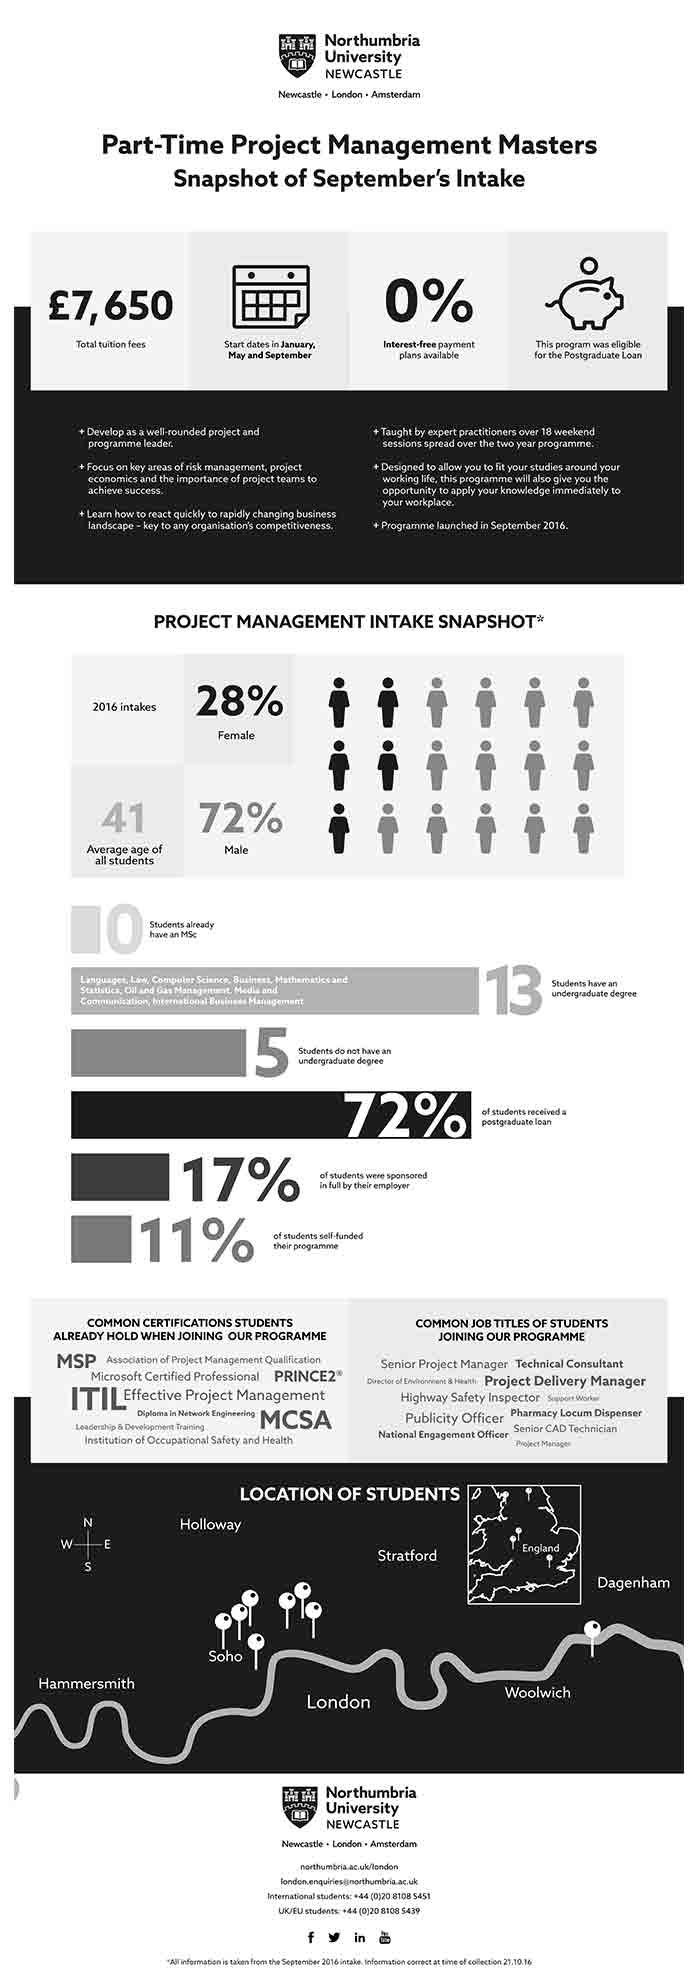 northumbria university london infographic msc project our infographic pdf here